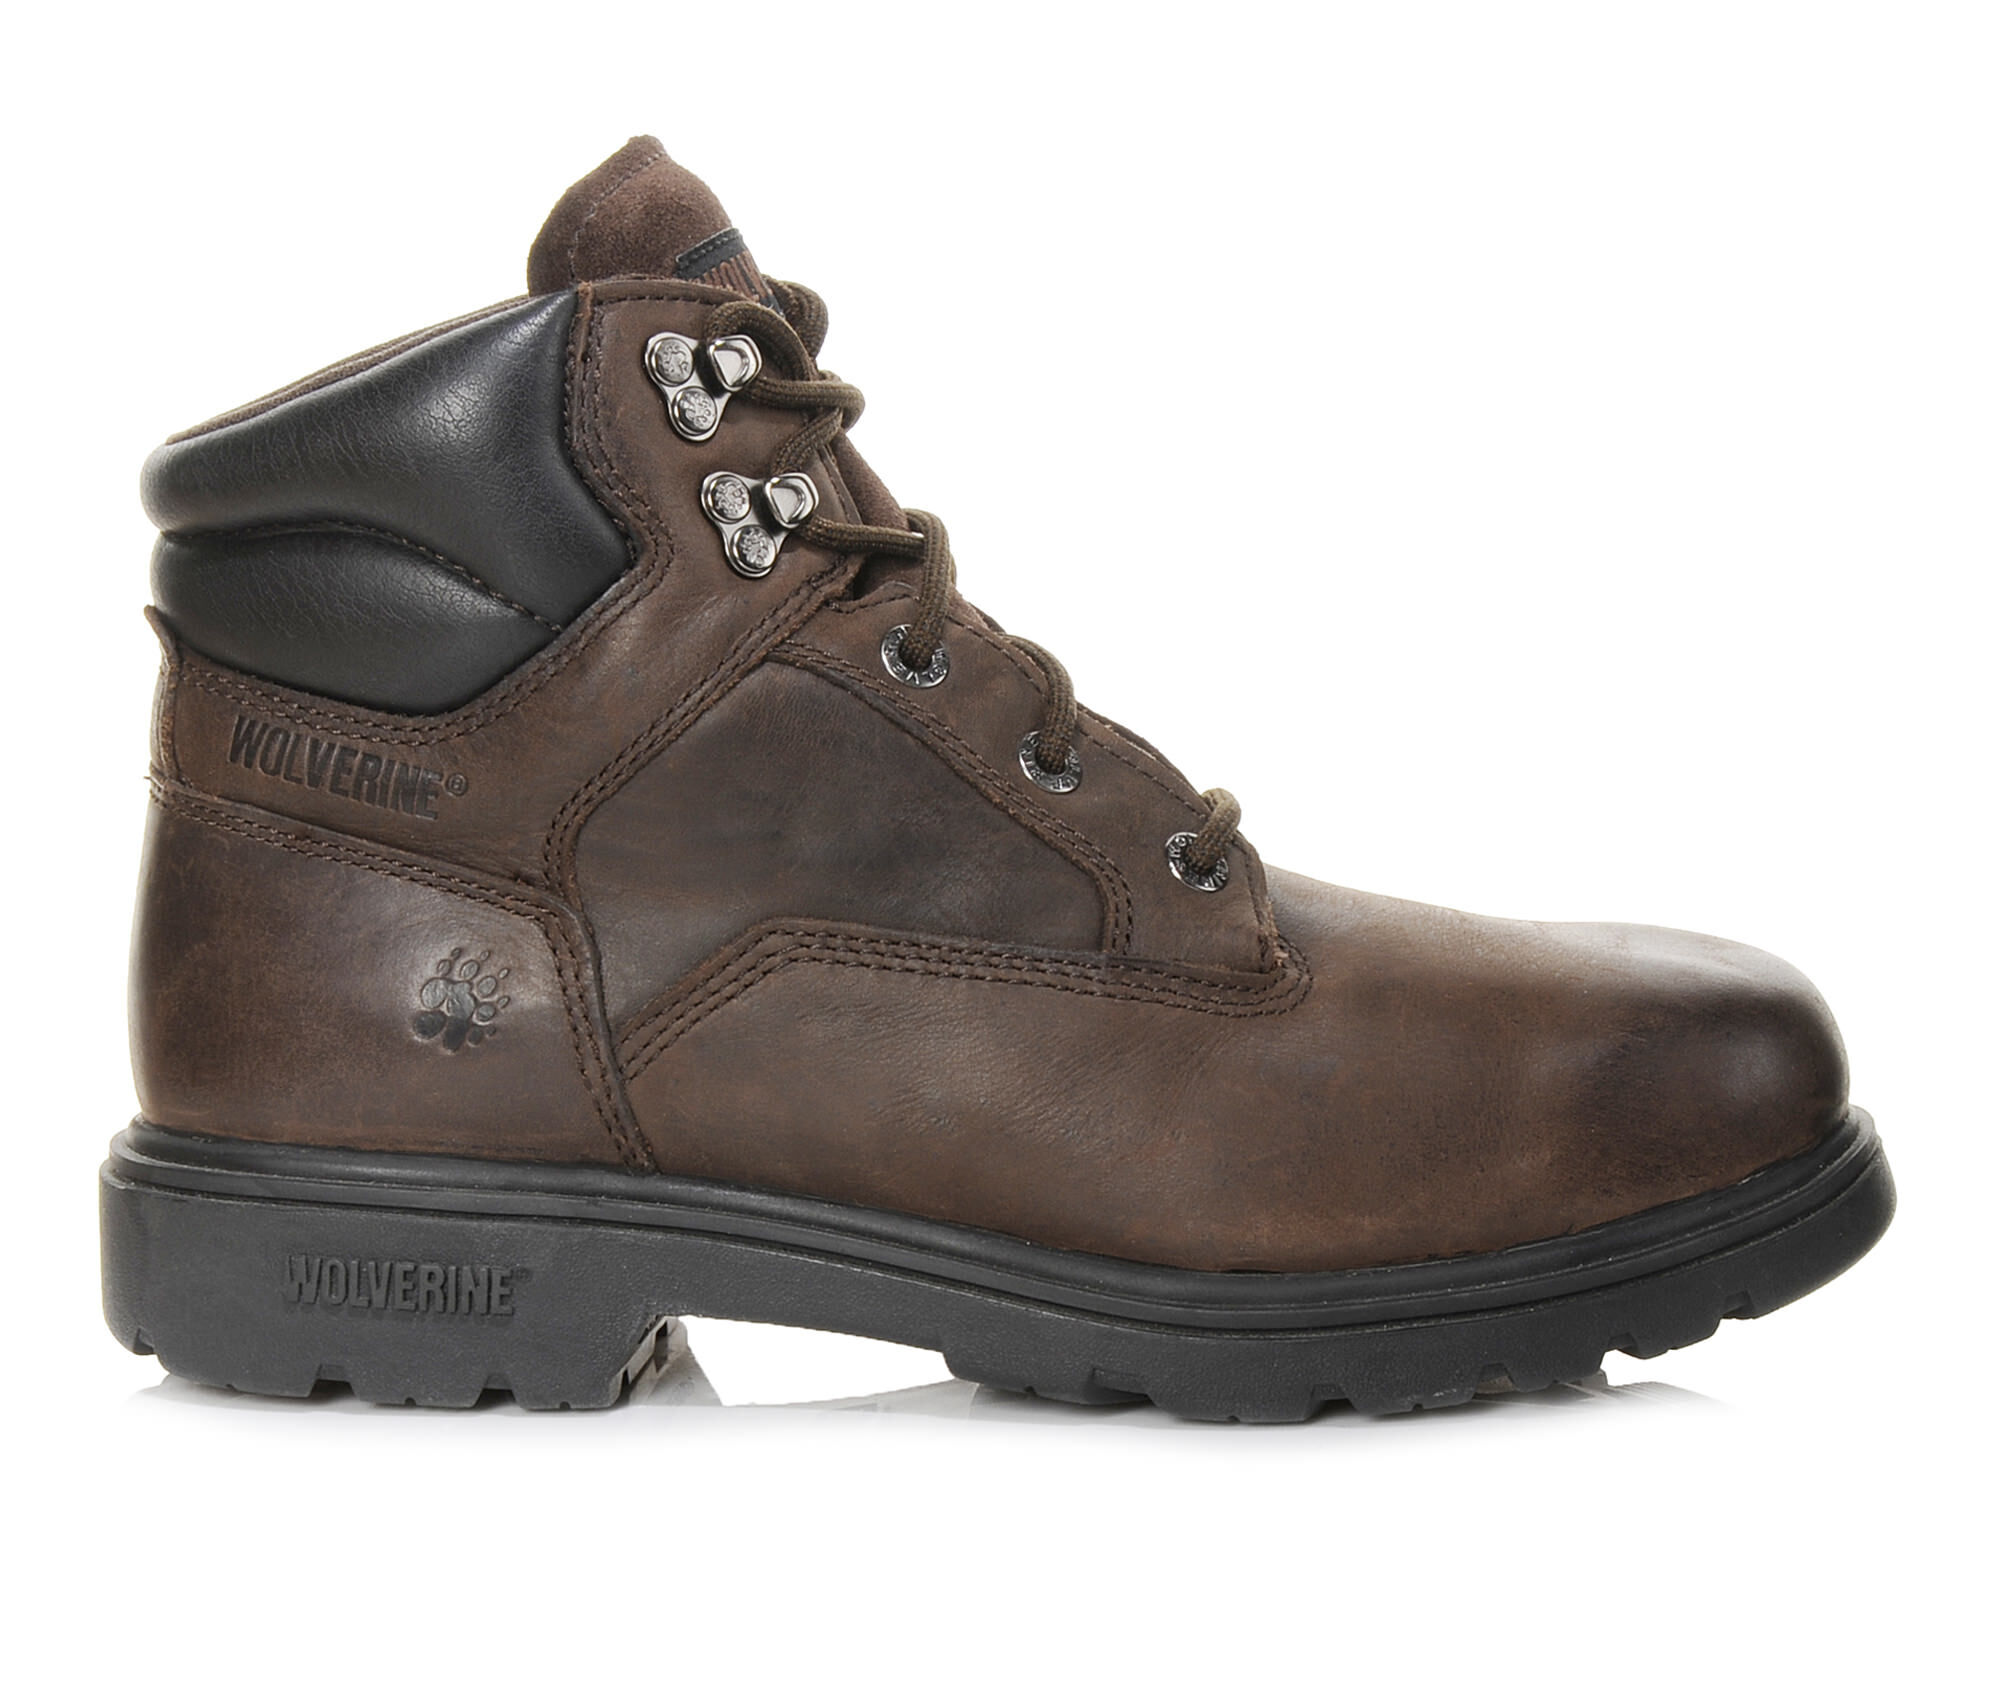 Wolverine Shoes Wolverine Bulldozer Mens Boots Chocolate